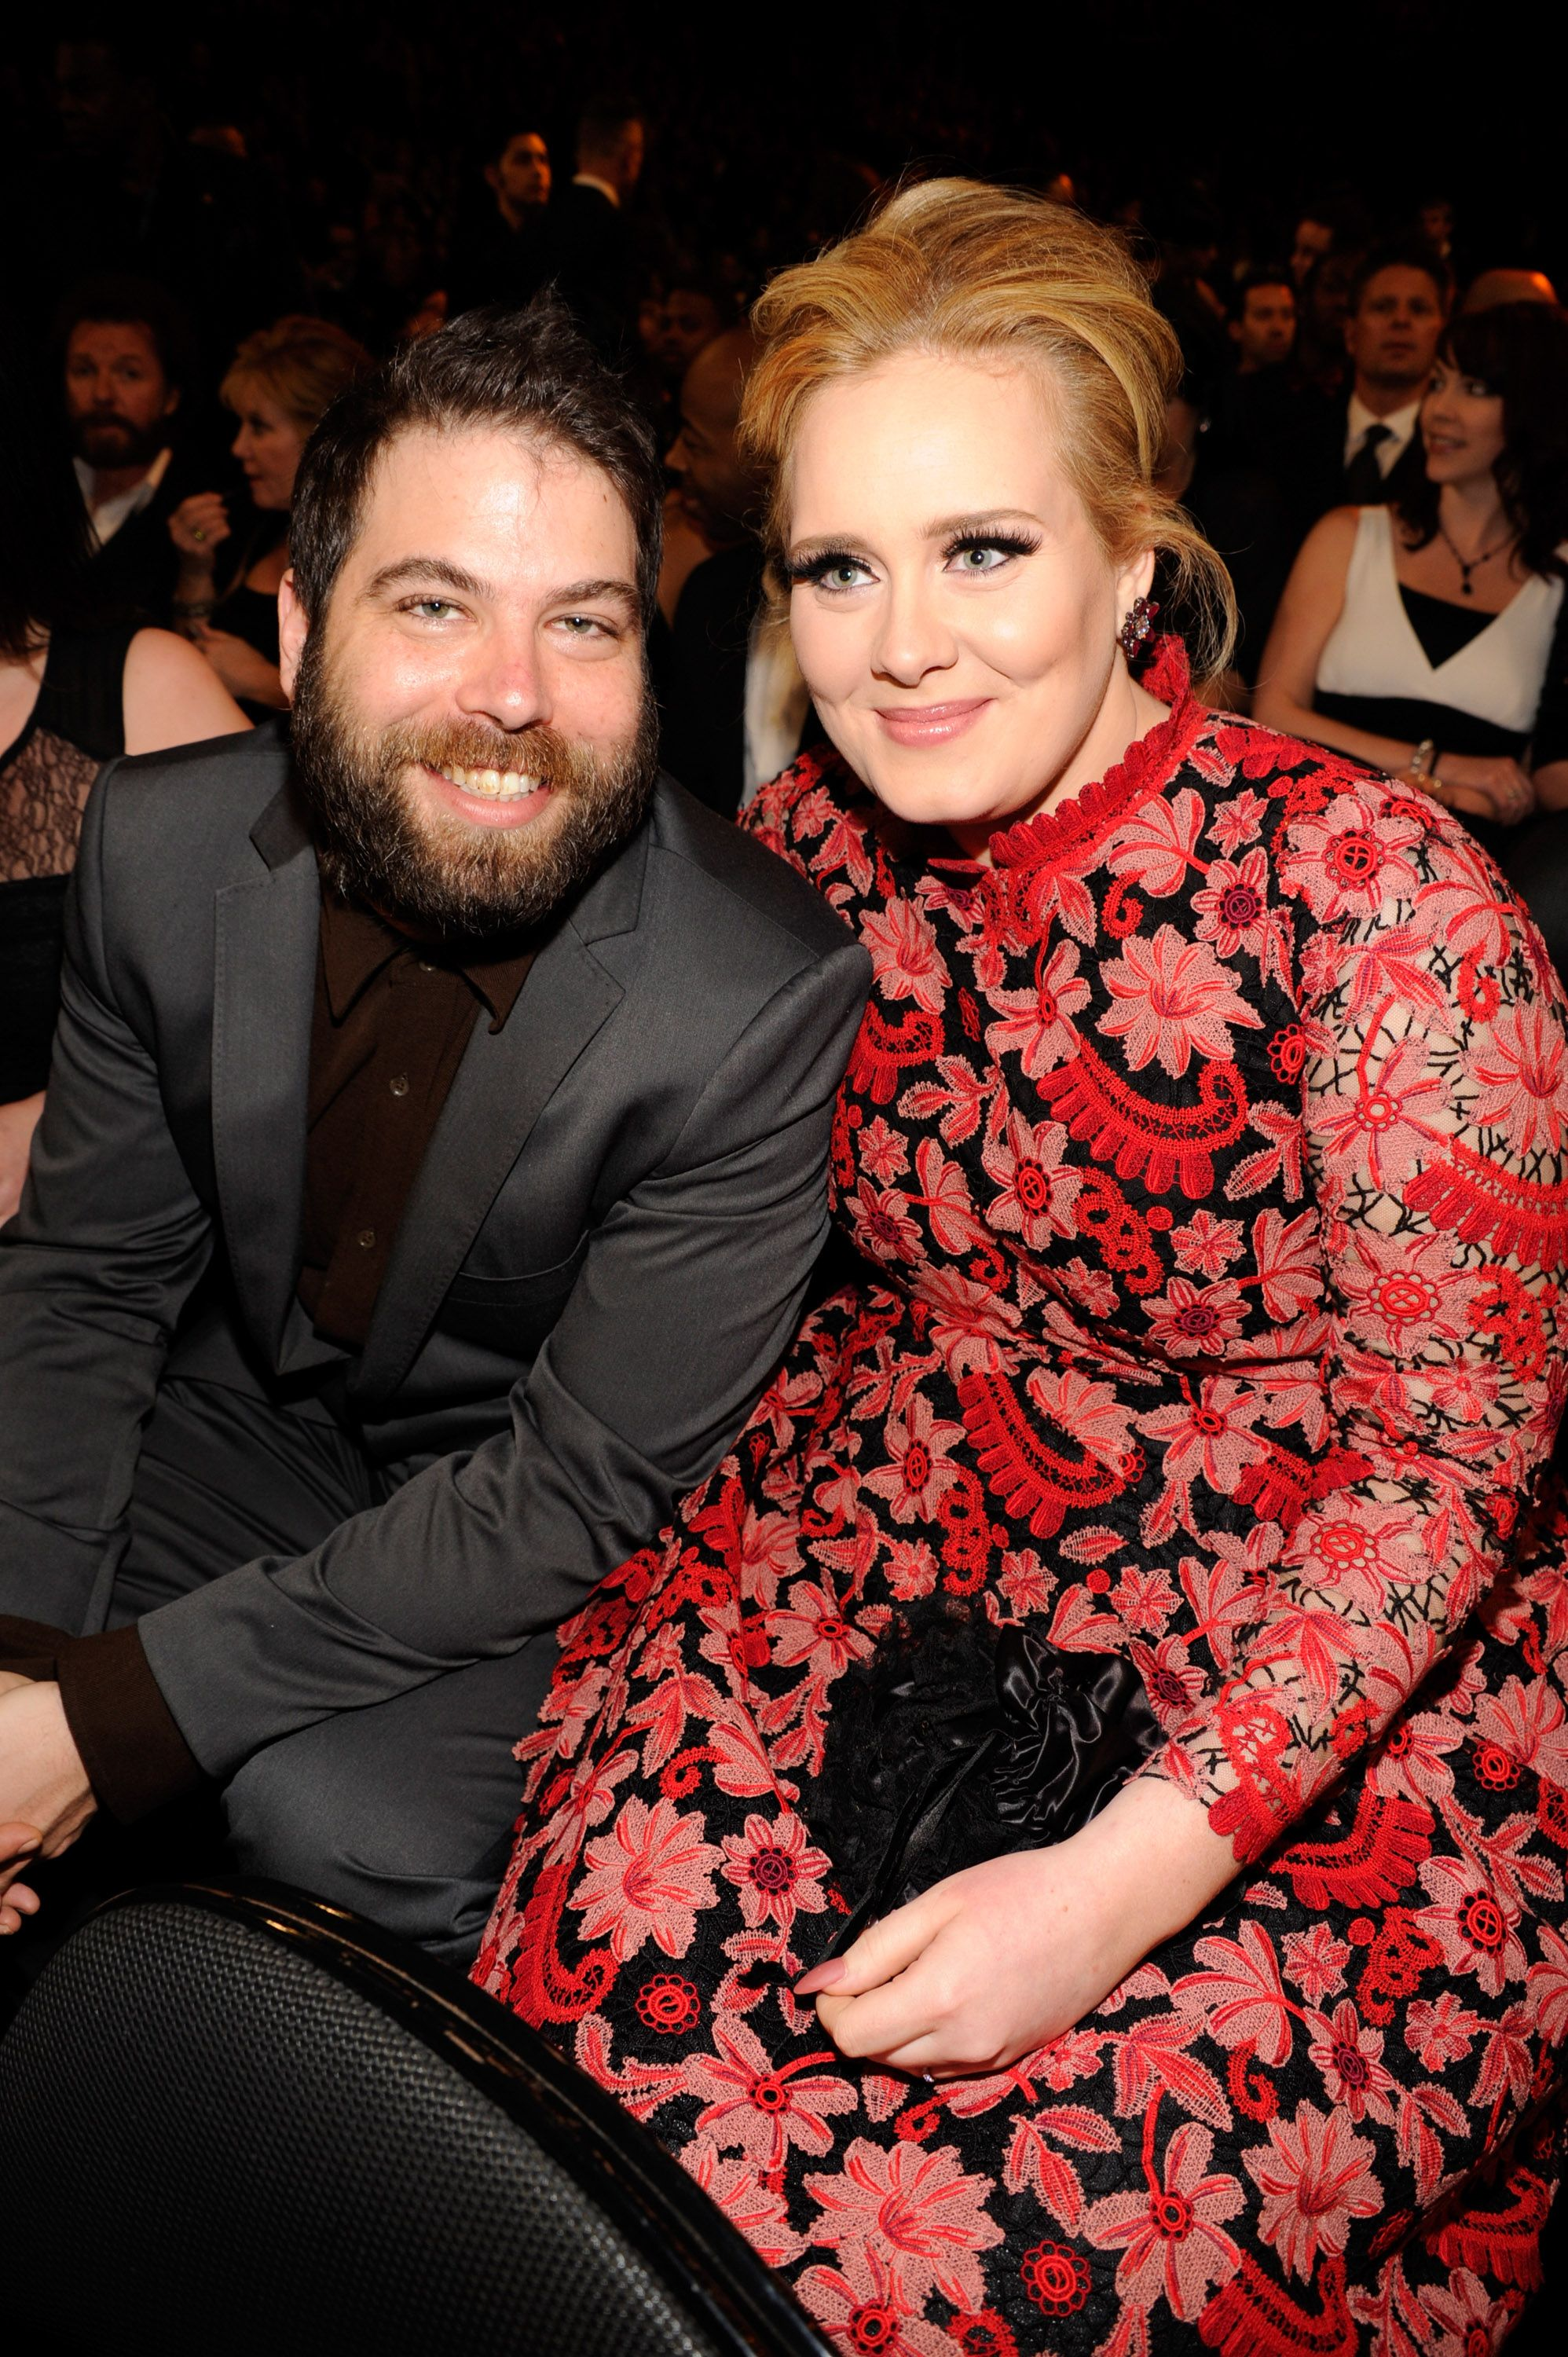 Adele and Simon Konecki Reportedly Split Because 'They Realized the Romantic Love Was No Longer There'